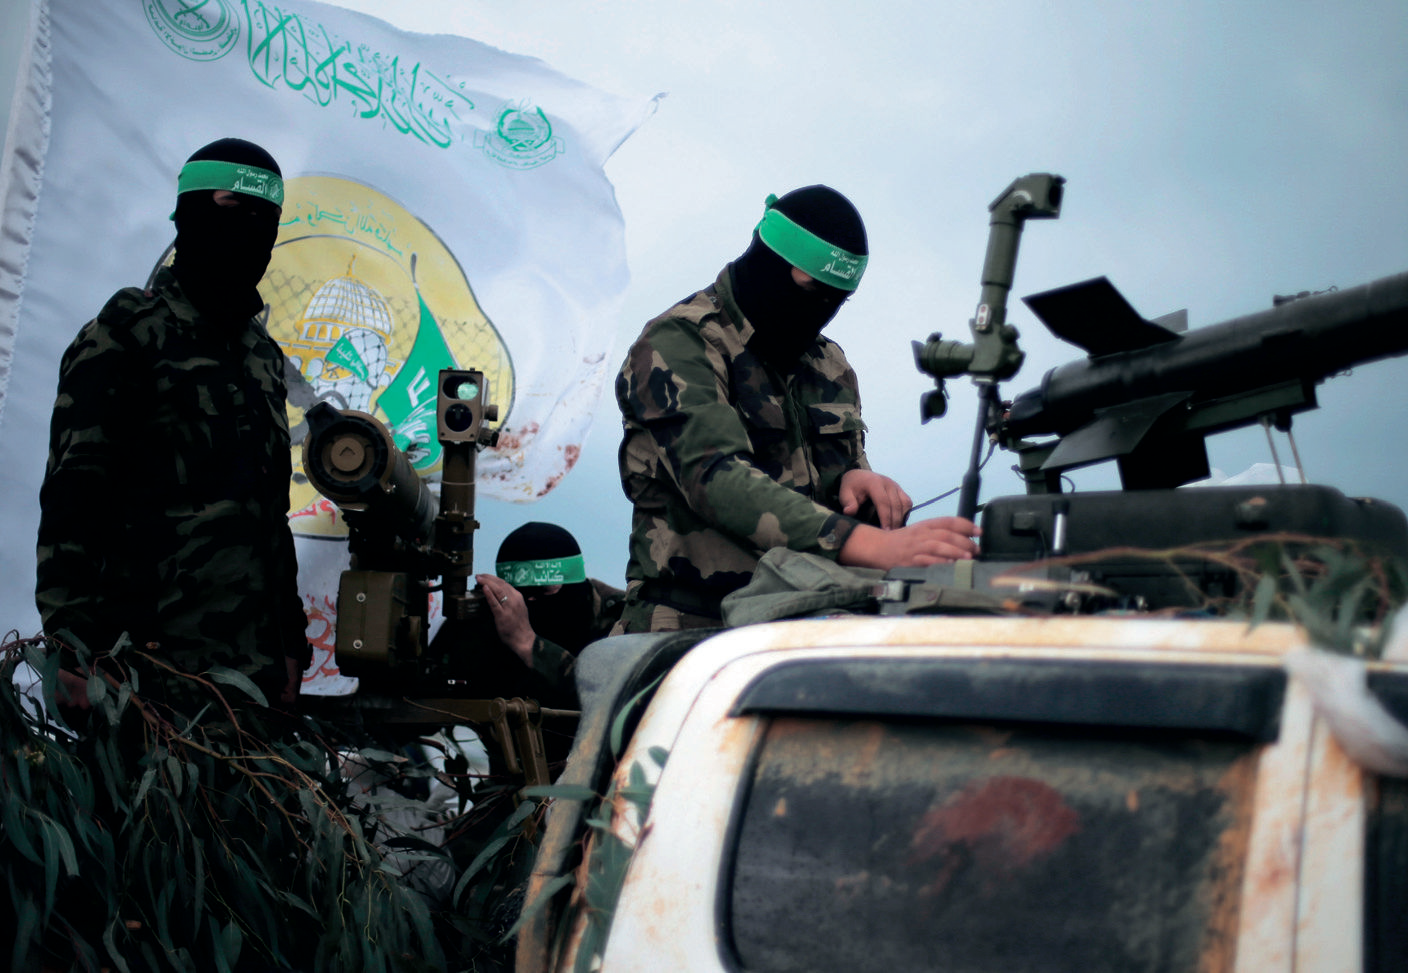 hamas a conventional terrorist group German bank transferred nearly $44,000 to terrorist group hamas the reaction from the authorities was too late, the remaining balance was roughly $124 for the hamas account at the bank.